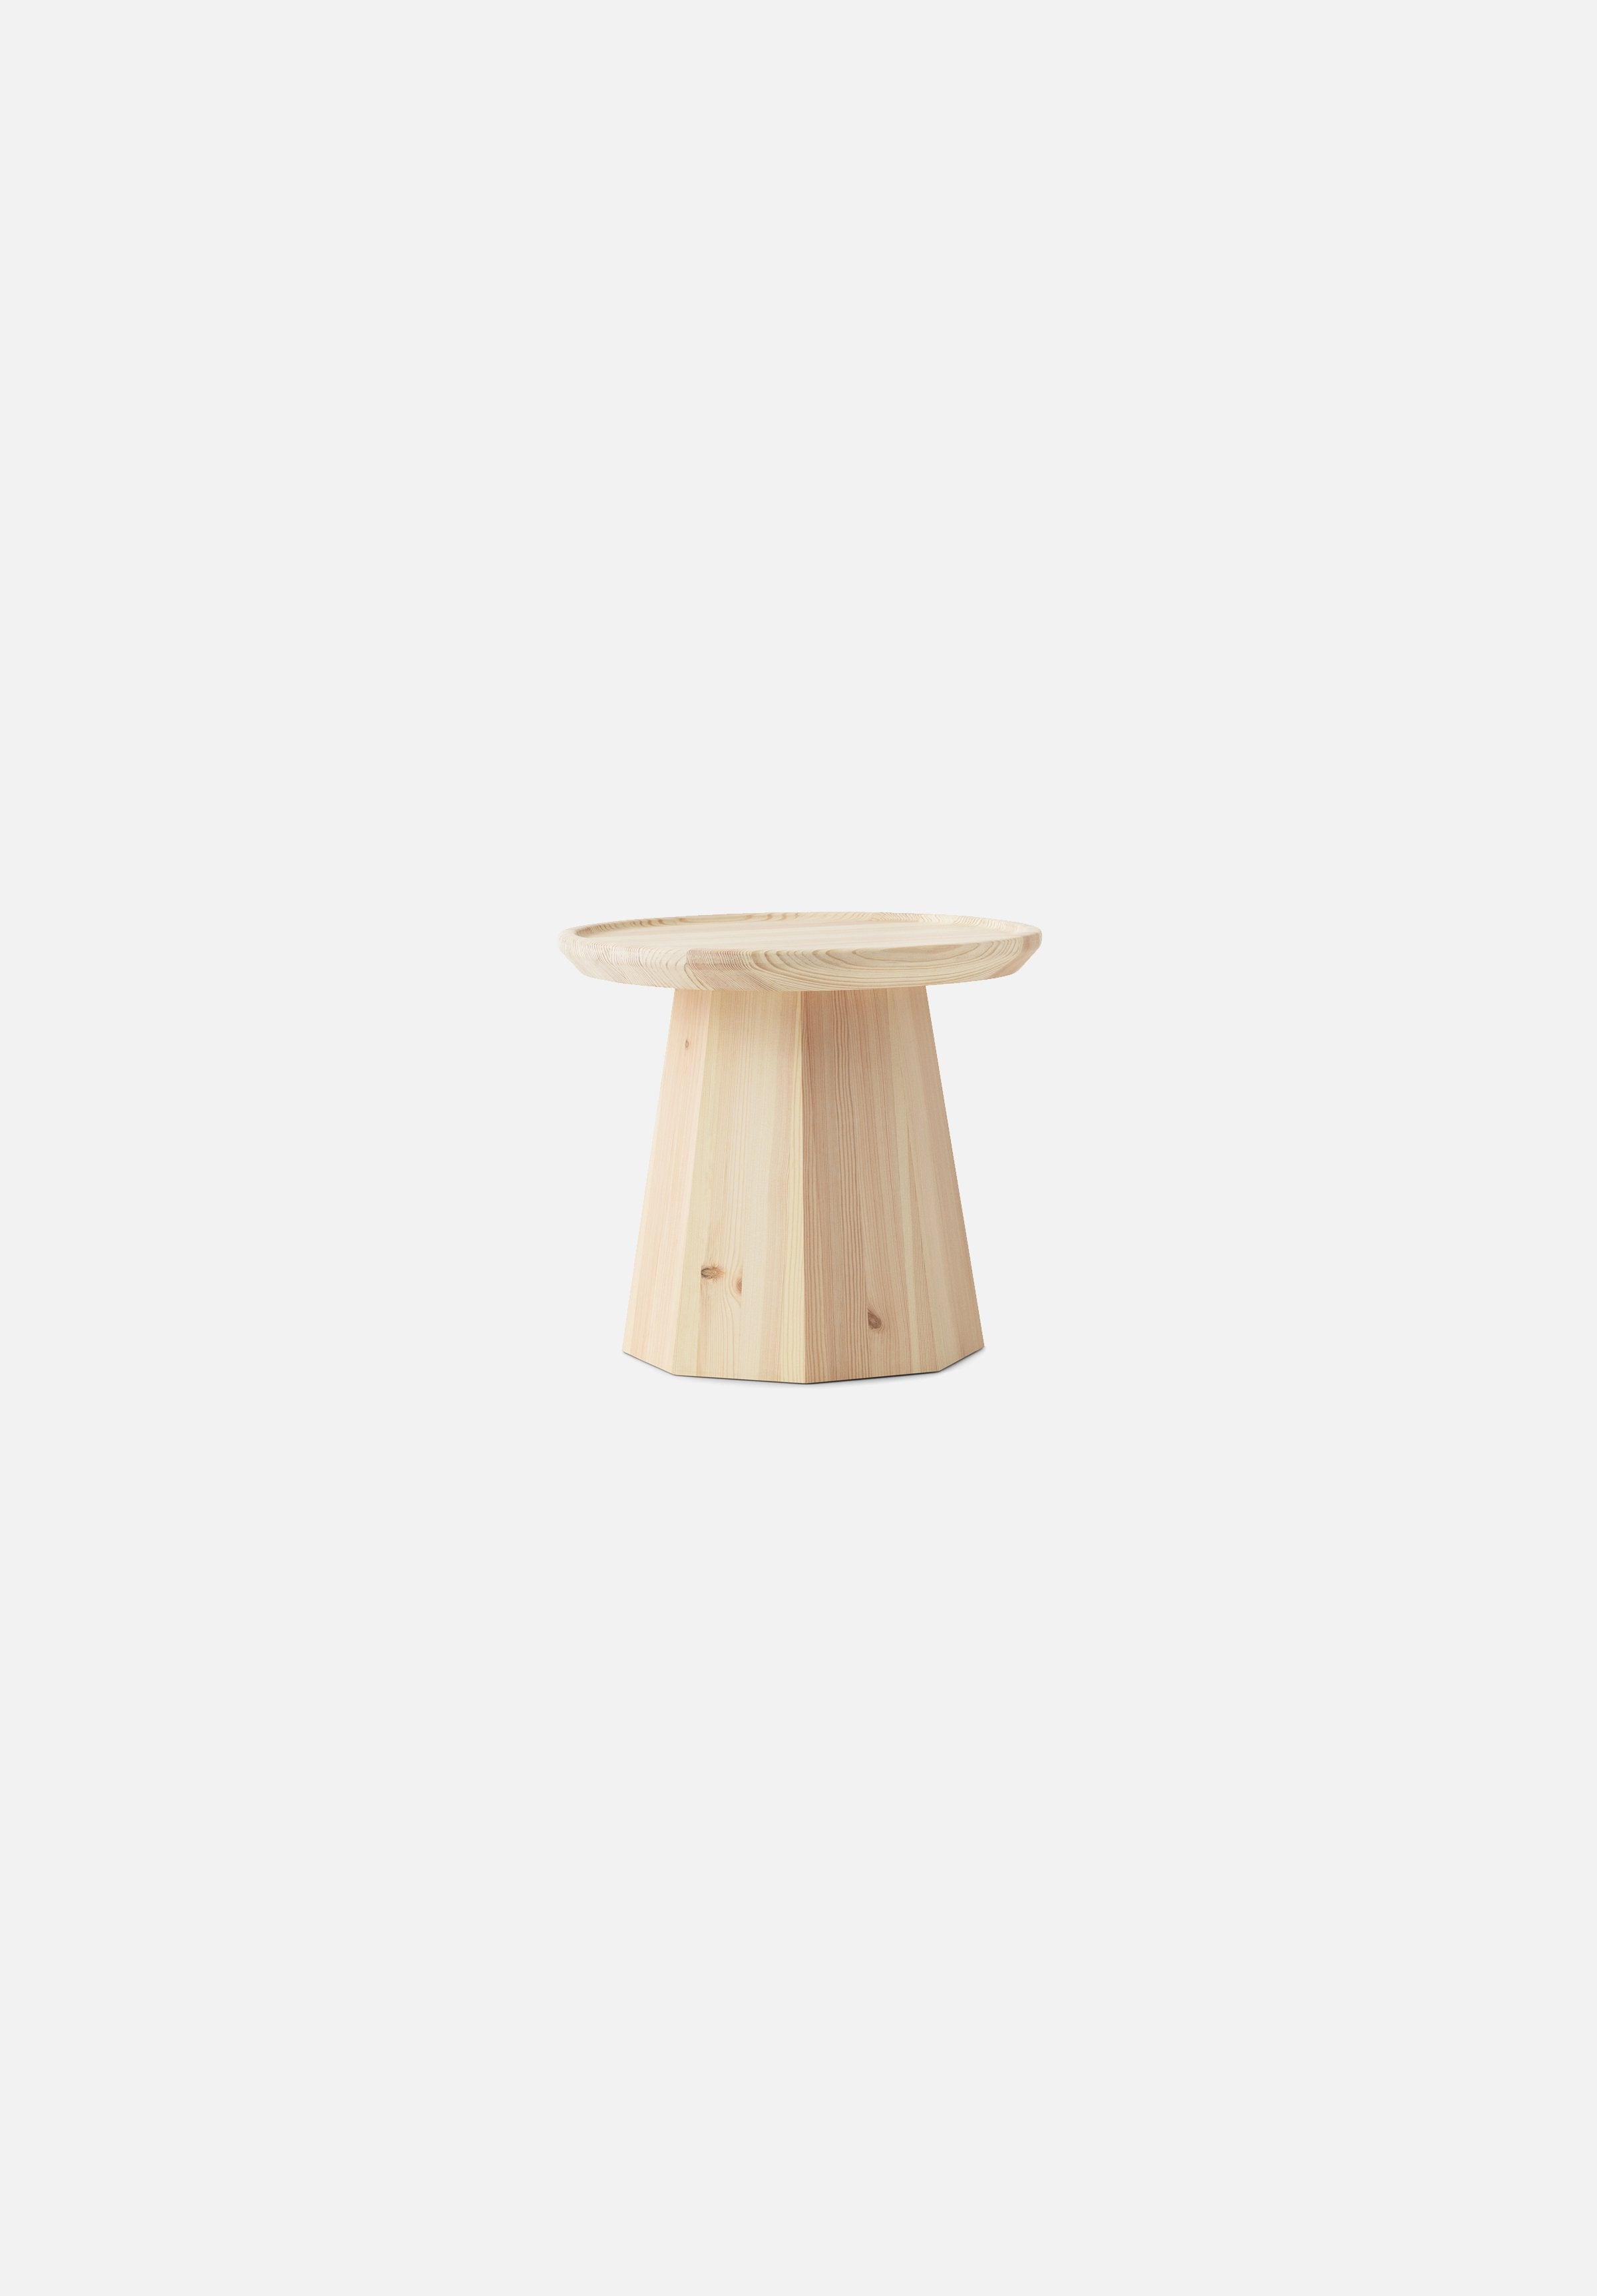 Pine Table-Simon Legald-Normann Copenhagen-natural-Small-Average-canada-design-store-danish-denmark-furniture-interior